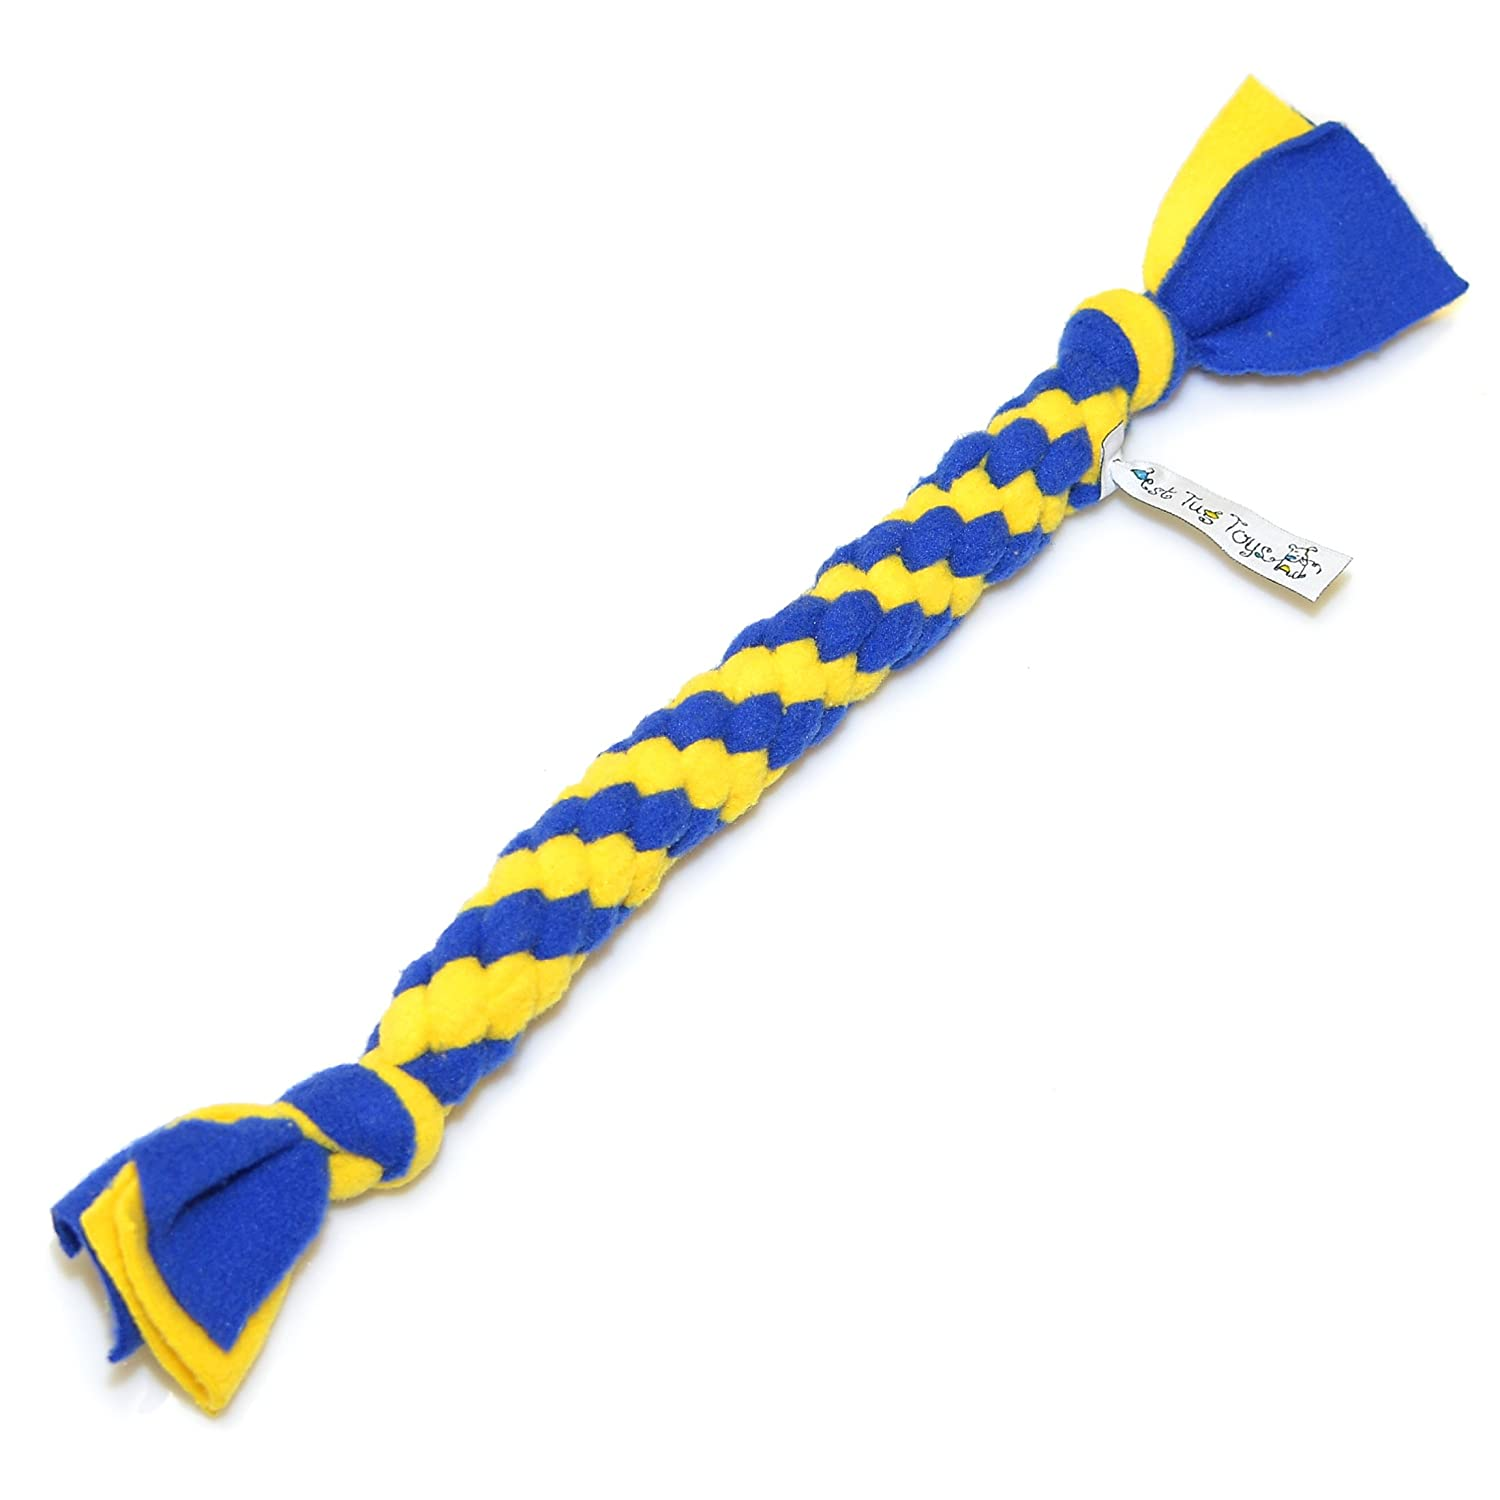 Fleece Handmade Rope Toy, Tug of War, Flexible, Durable, Easy Clean, (approximately 14 inch) Best Tug Toys for Small Dogs and Puppies